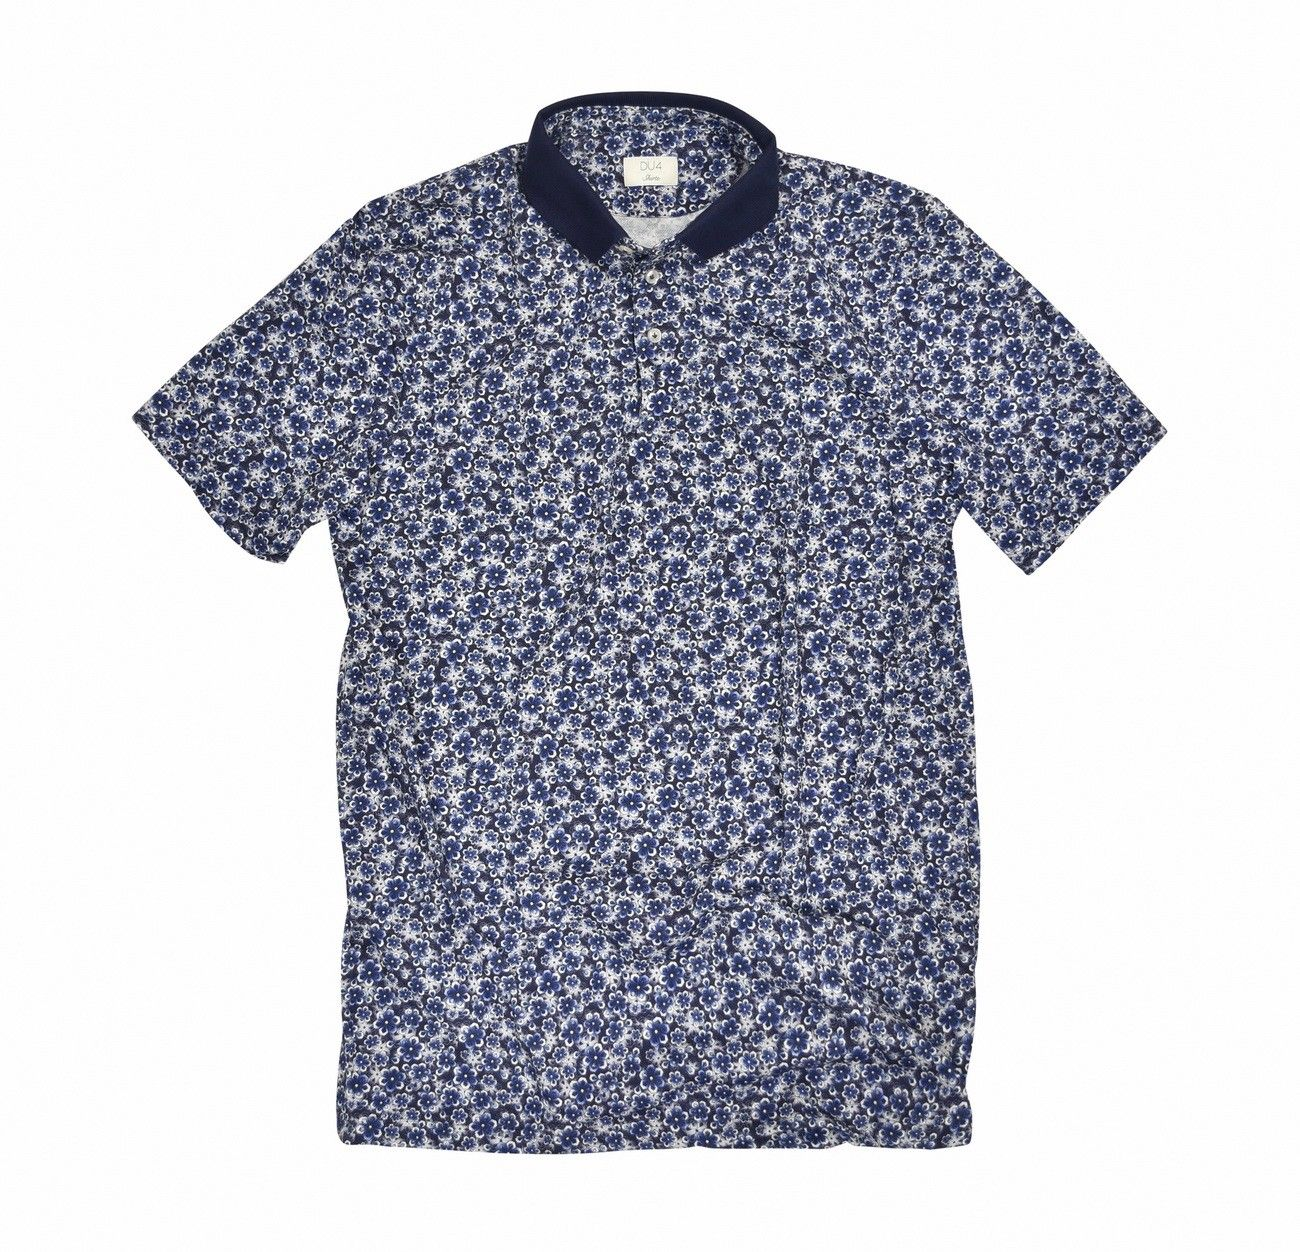 DU4 - Herren Polo Shirt - Piet - Flower Blue